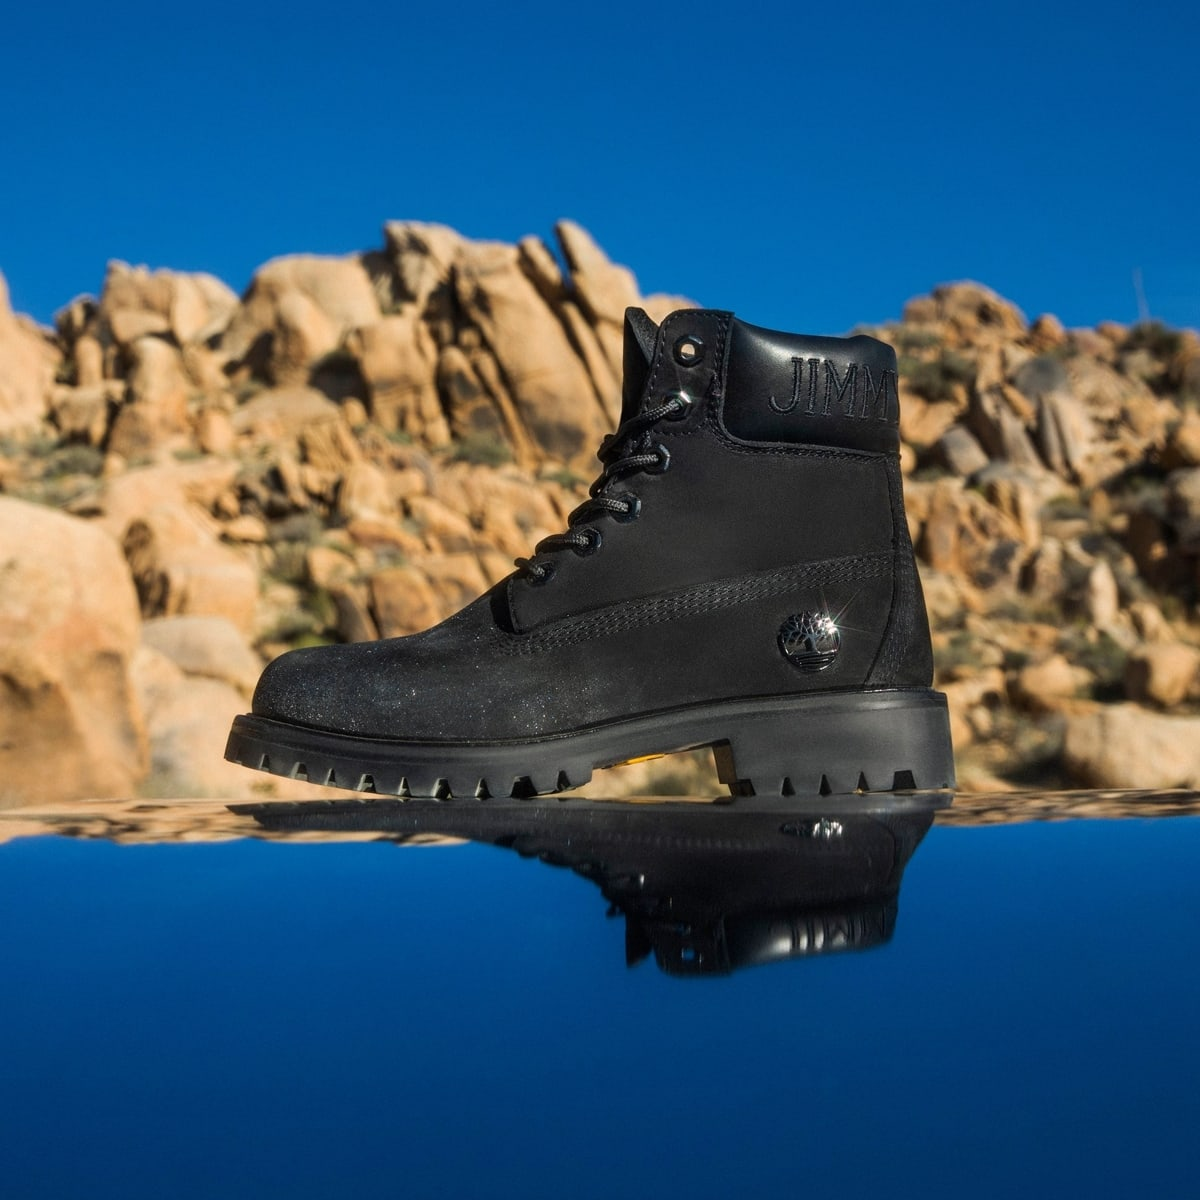 In black nubuck leather with shimmering detail, this sustainably-made pair is a glamorous update of Timberland's heritage 6-inch style